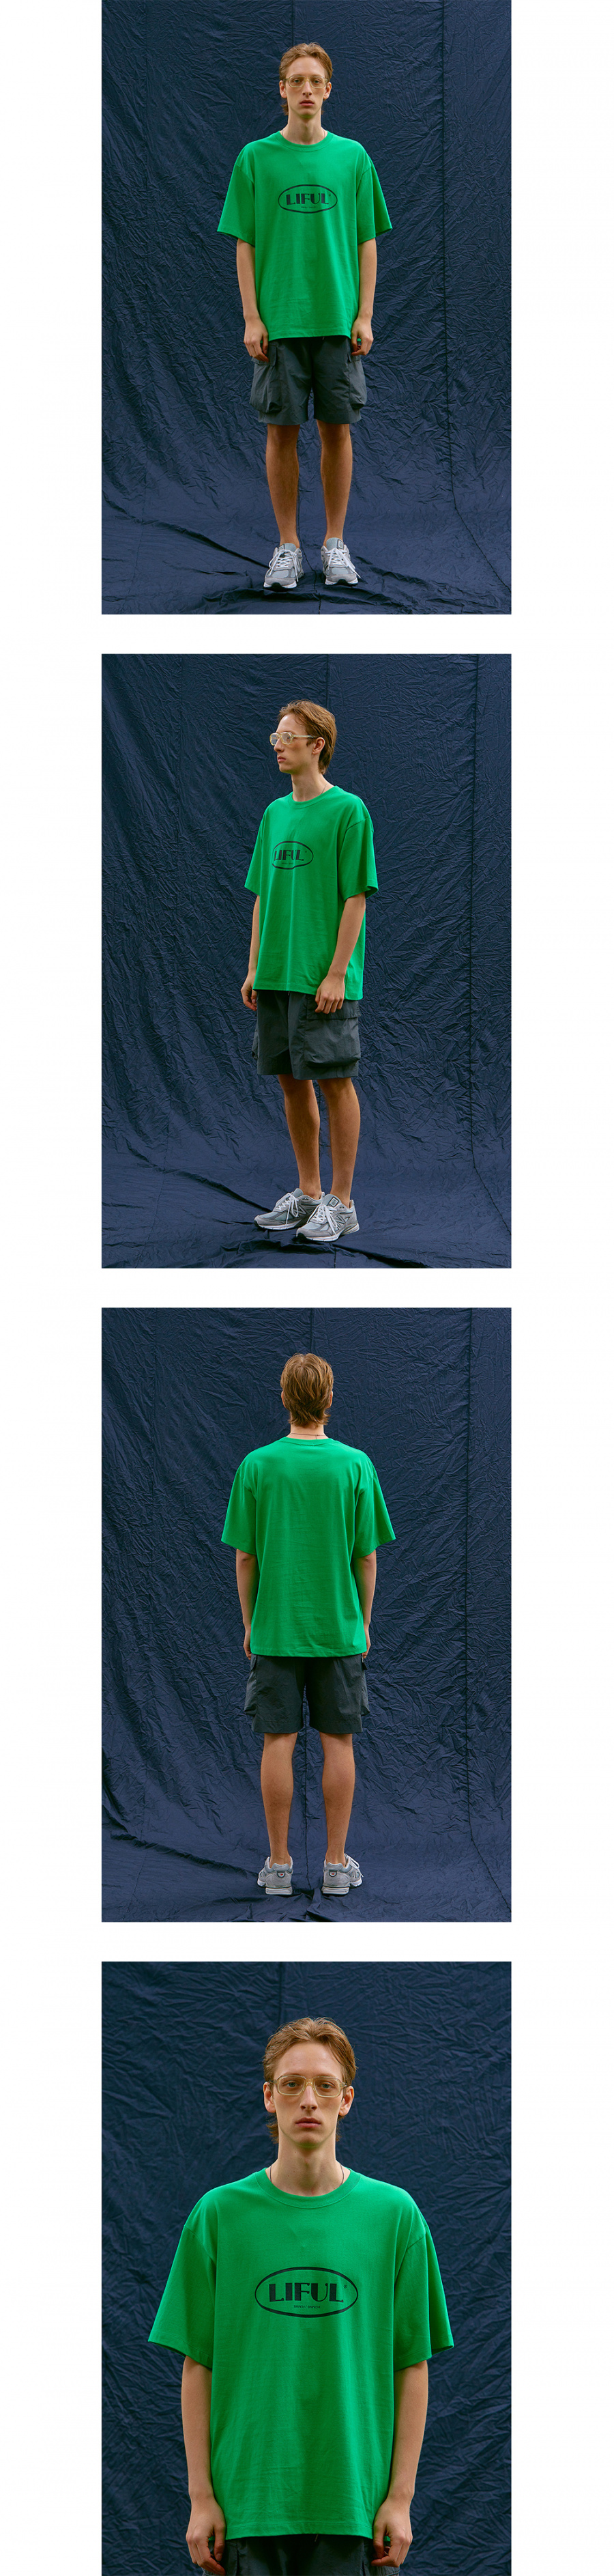 라이풀(LIFUL) OVAL LOGO TEE green